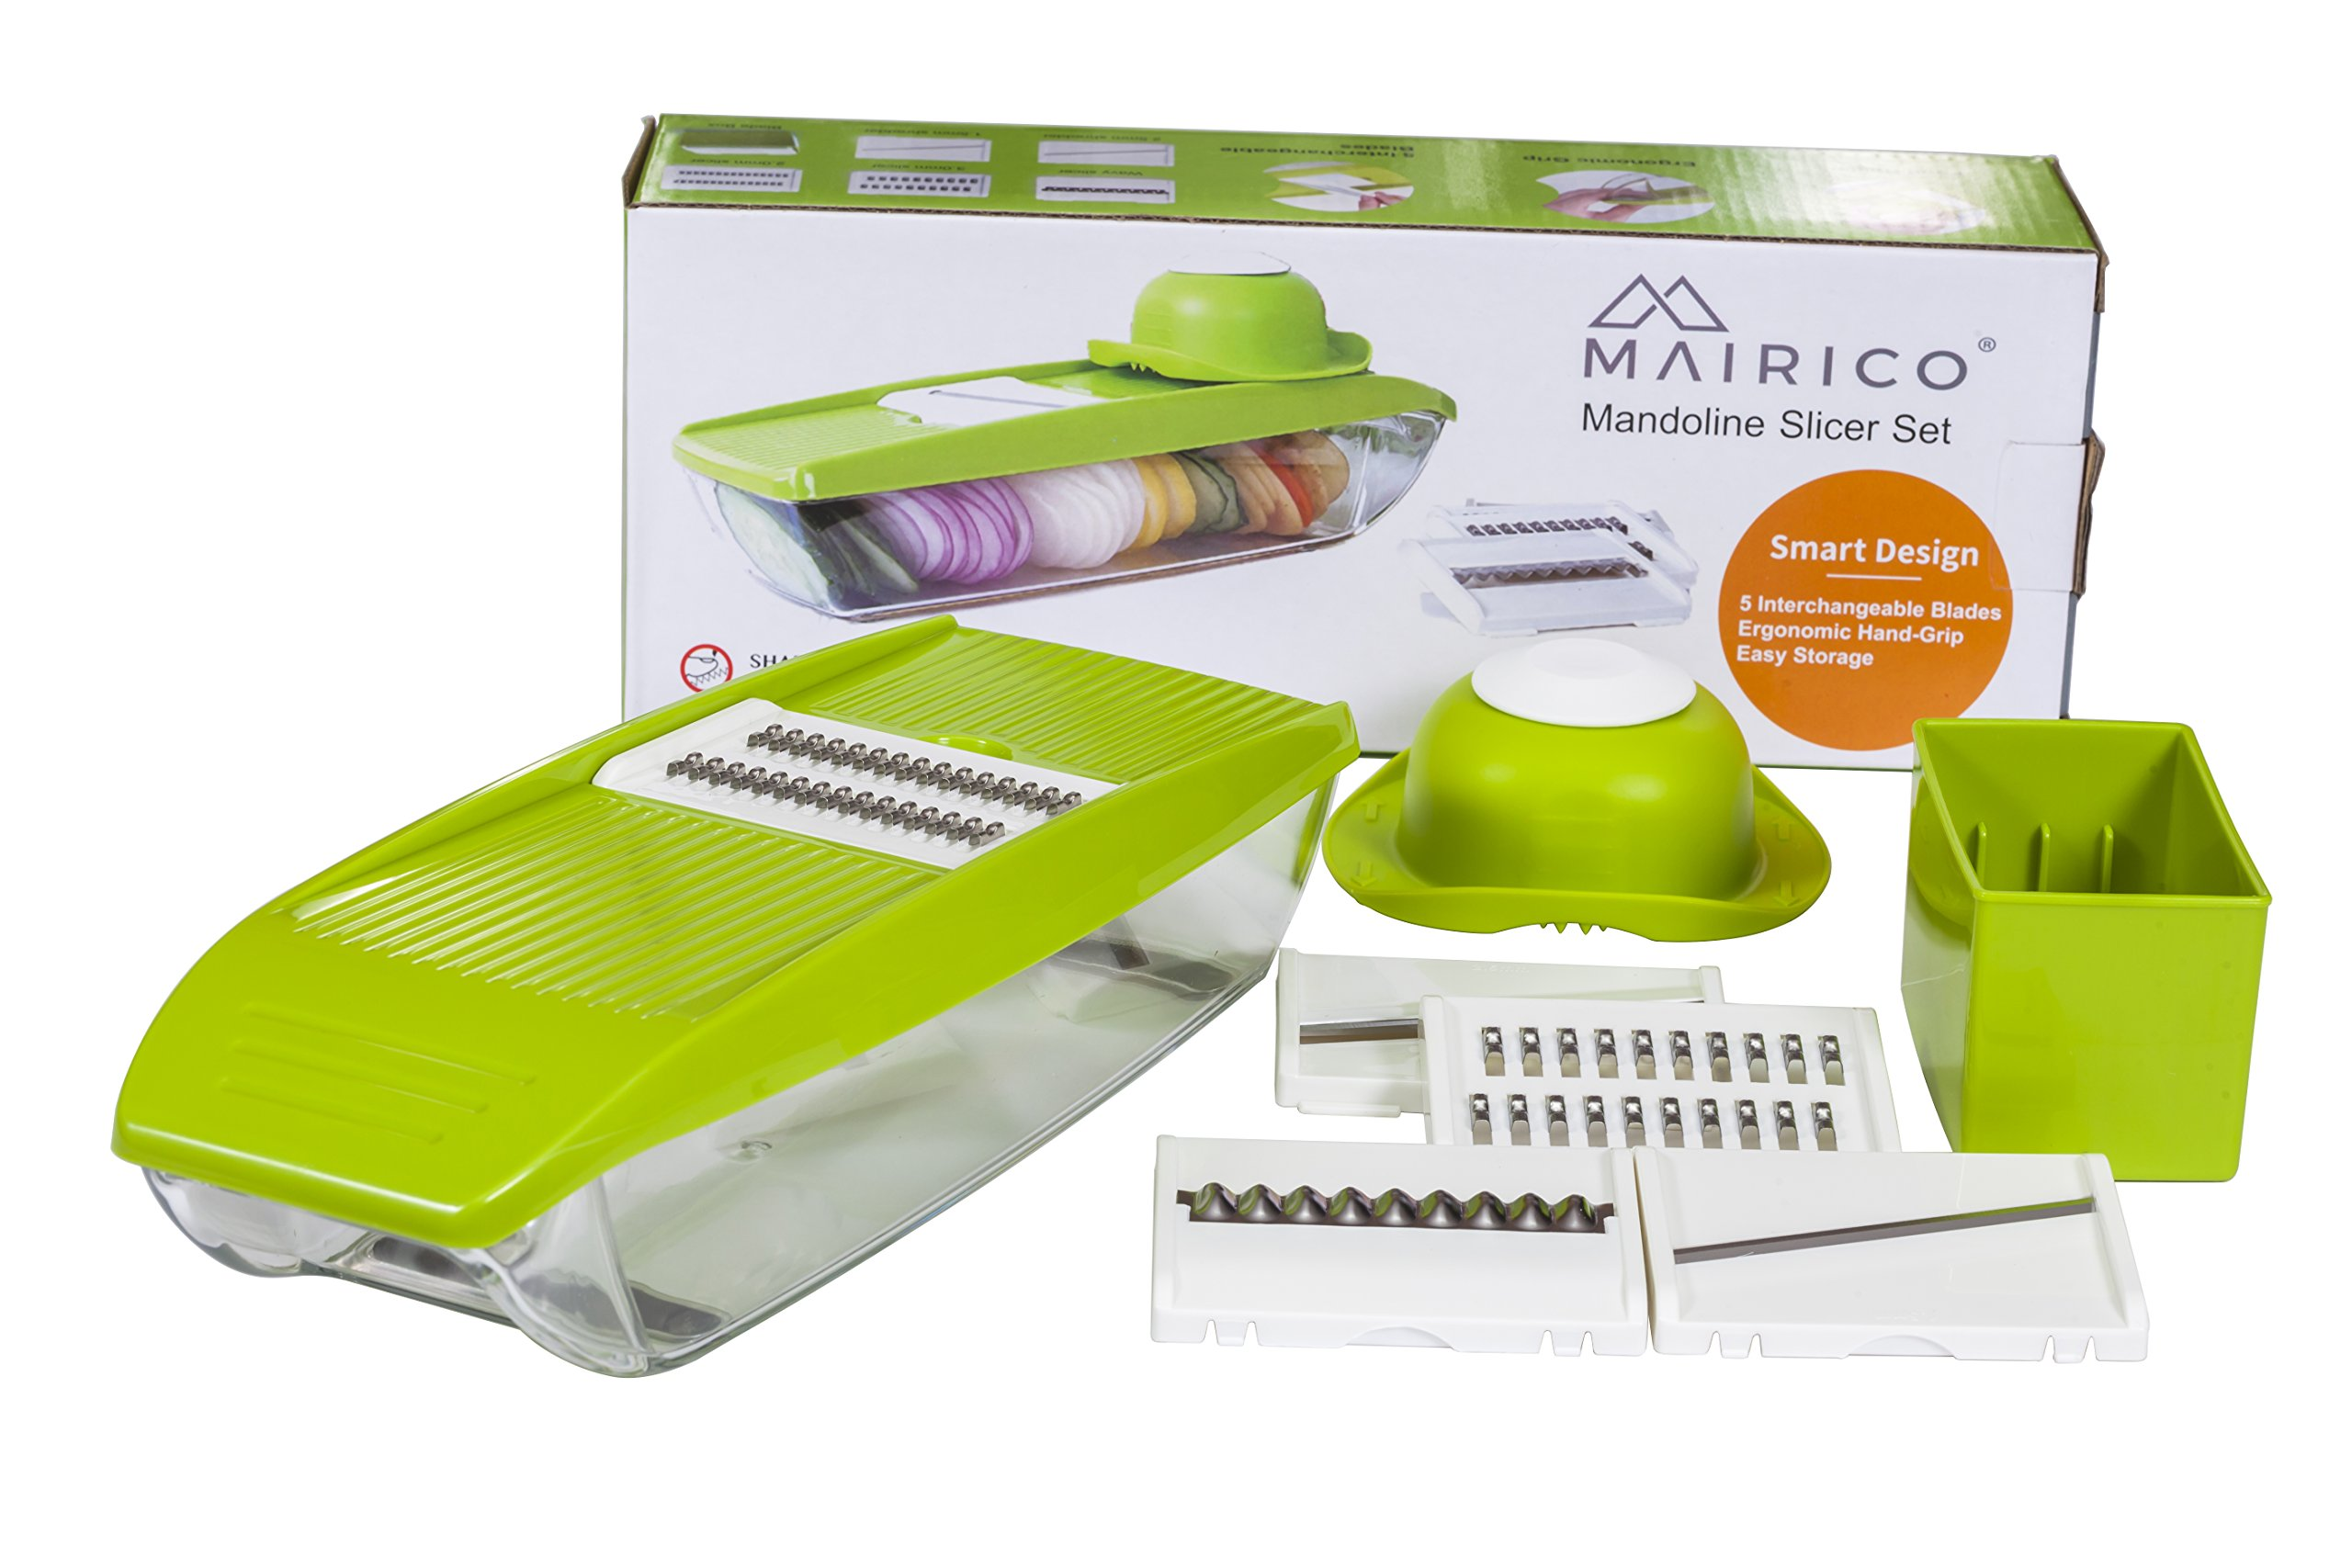 MAIRICO Mandoline Slicer with Container - Premium Julienne Vegetable Slicer with 5 Ultra Sharp Interchangeable Stainless Steel Blades and Hand Guard